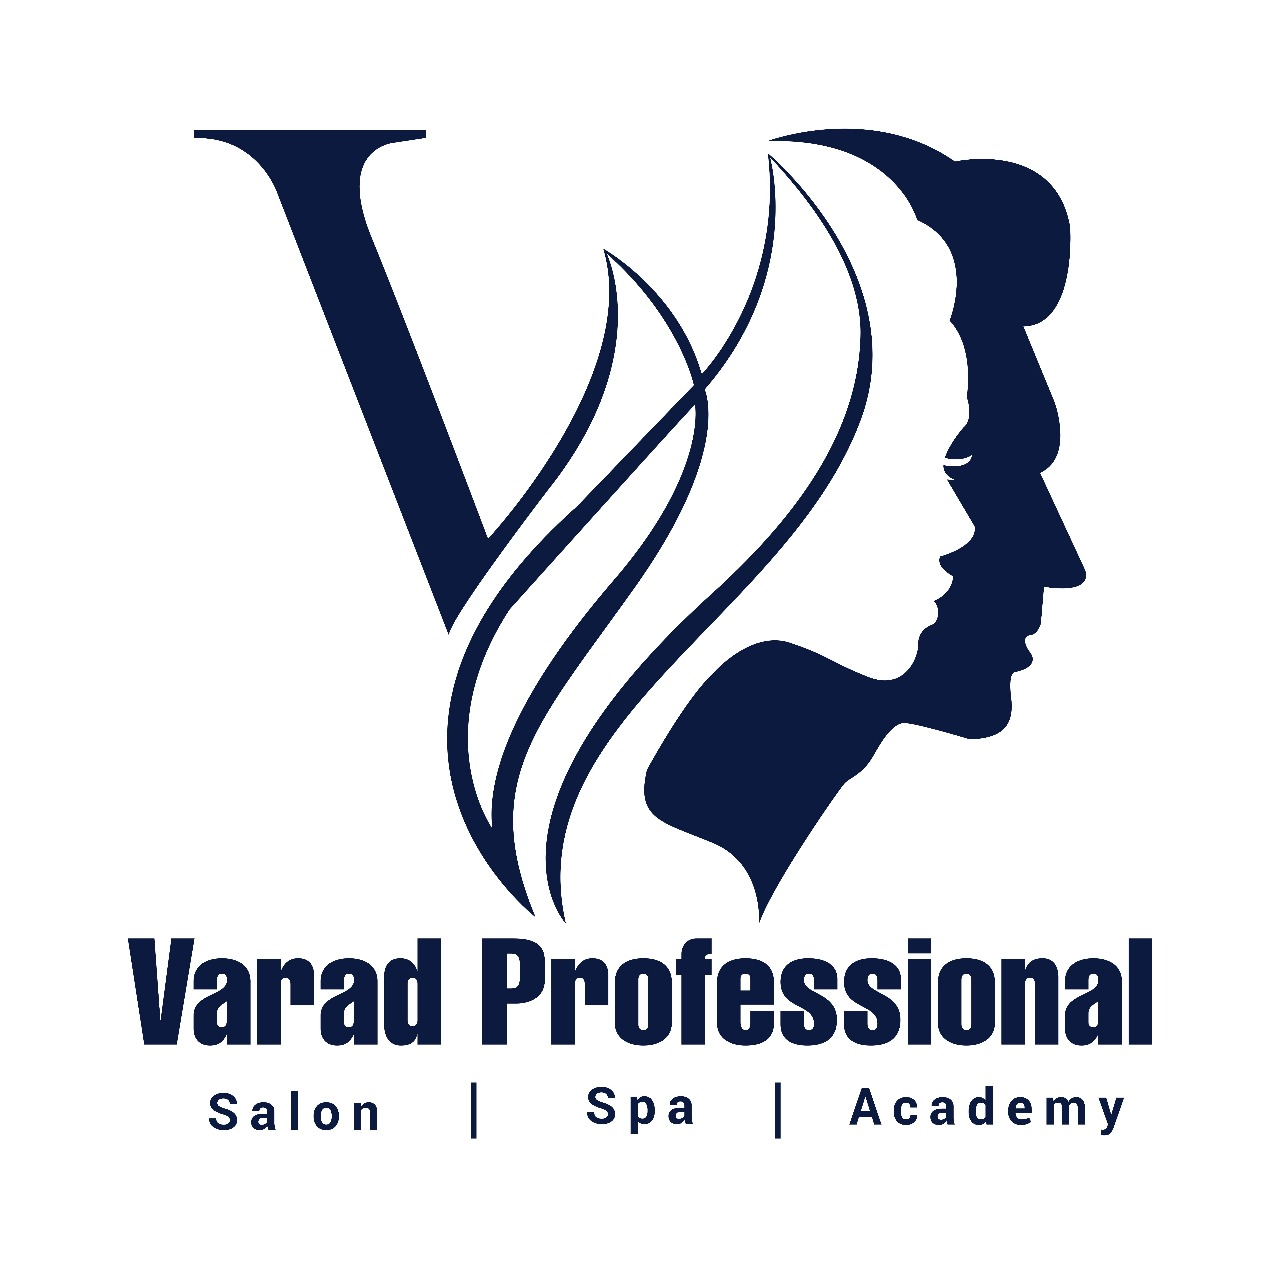 Varad Professional Unisex Salon and Academy_image0